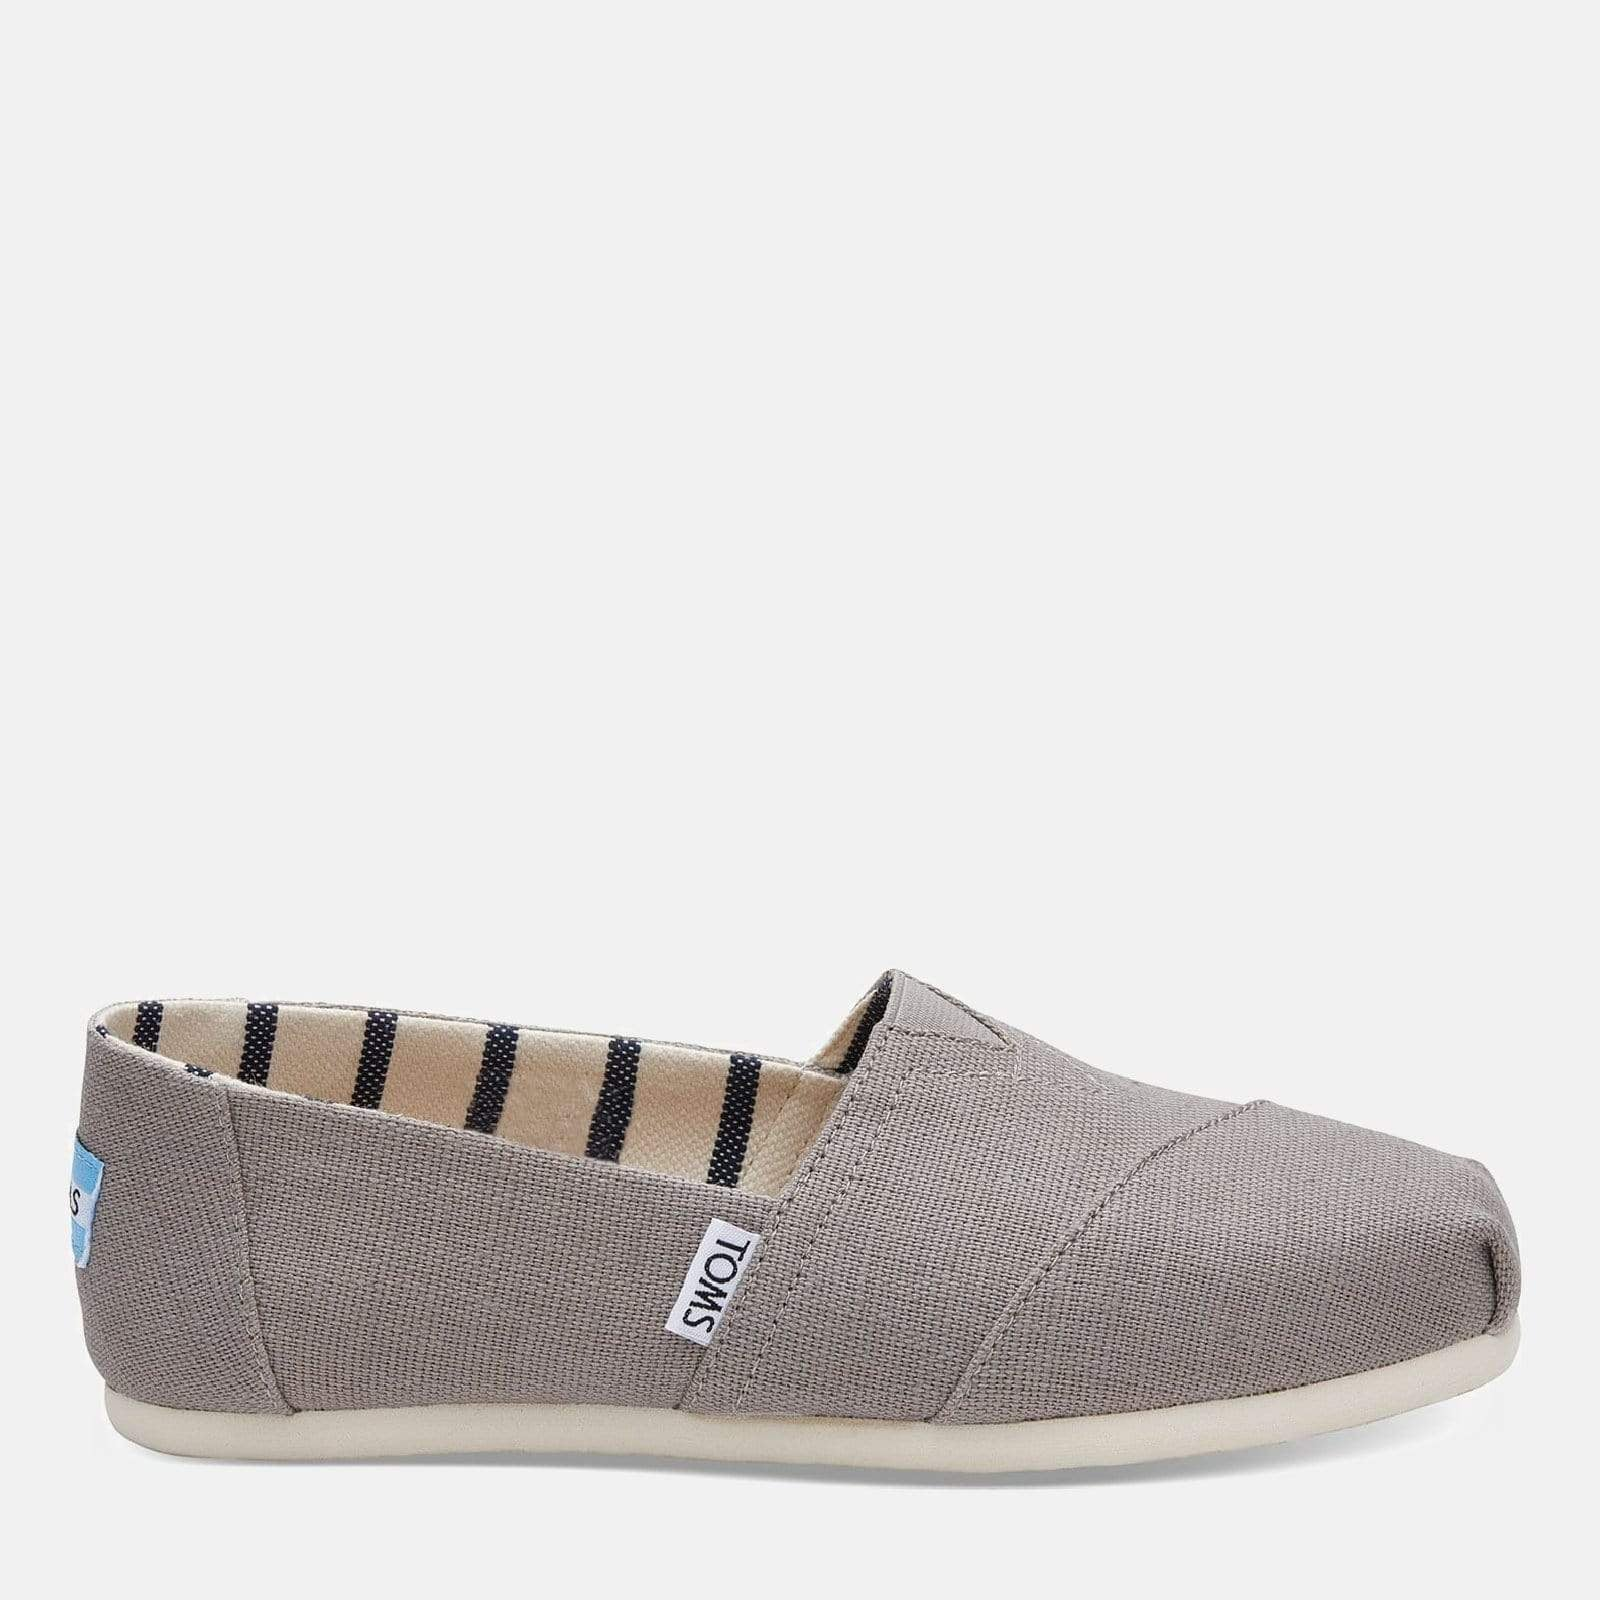 50e1d8f1867 TOMS Footwear 3L   Morning Dove Heritage Canvas Women s Alpargata  Espadrille Morning Dove Heritage Canvas